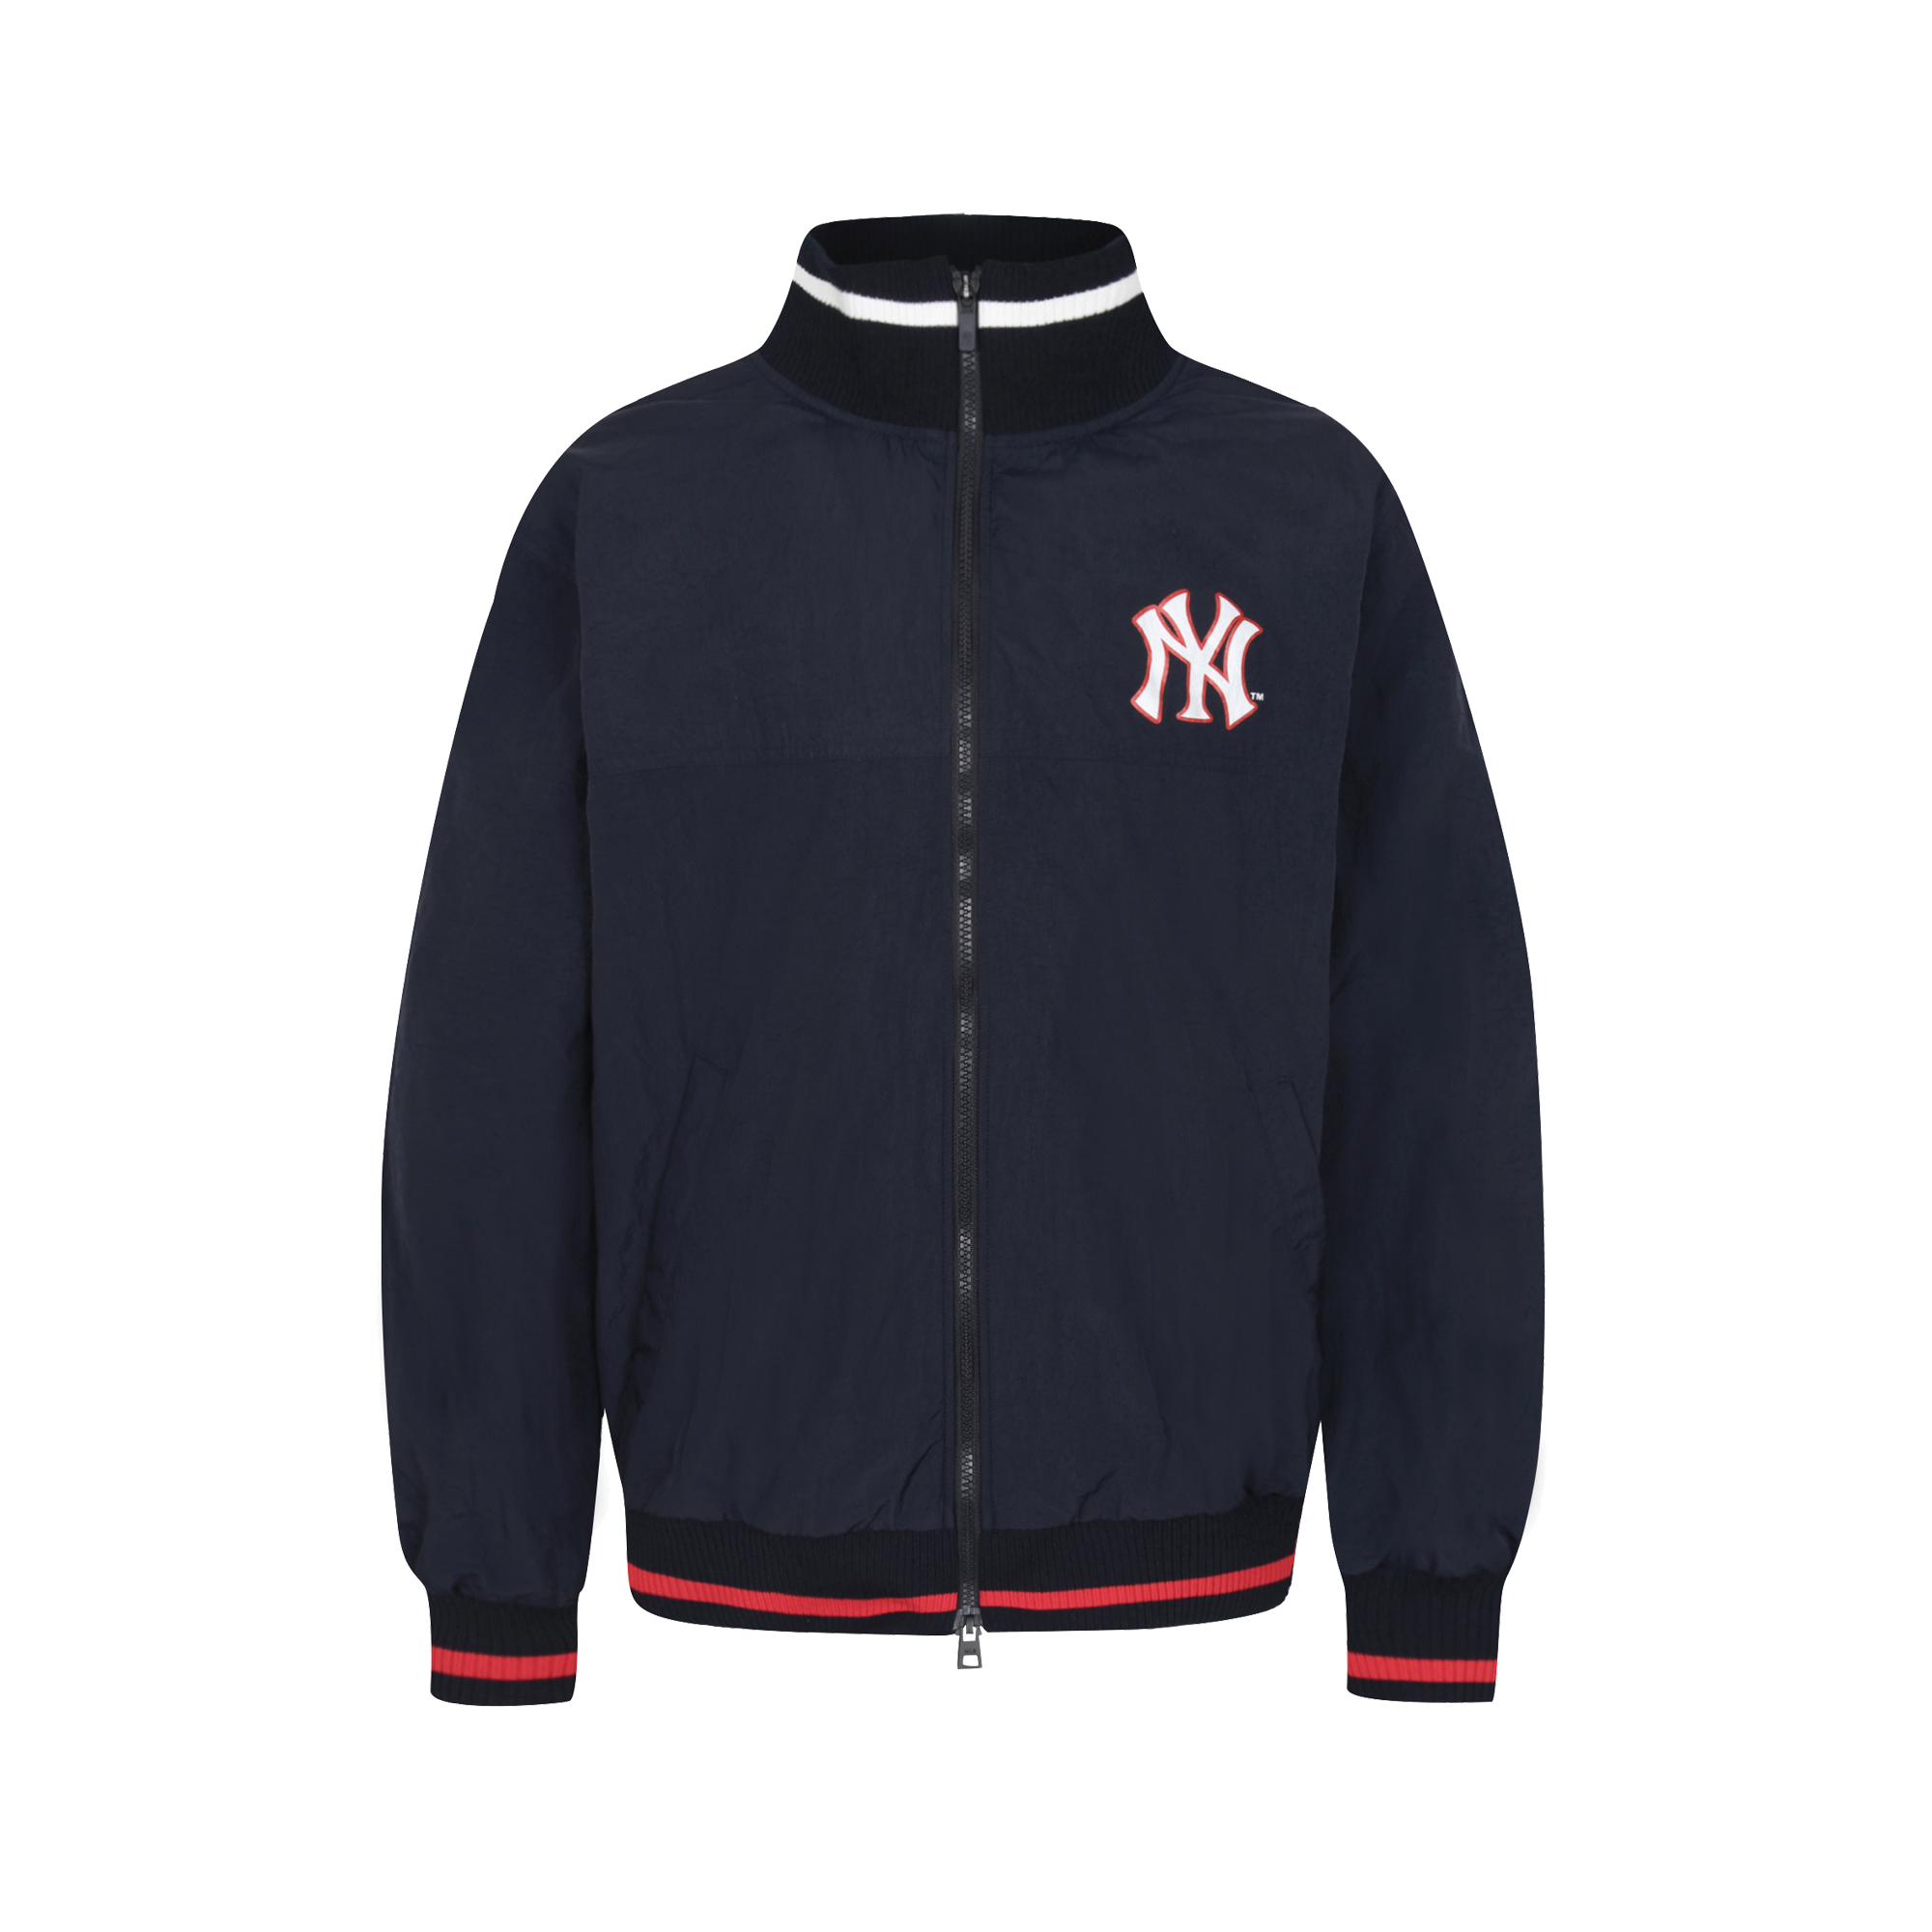 NEW YORK YANKEES BASIC TRAINING ZIP-UP